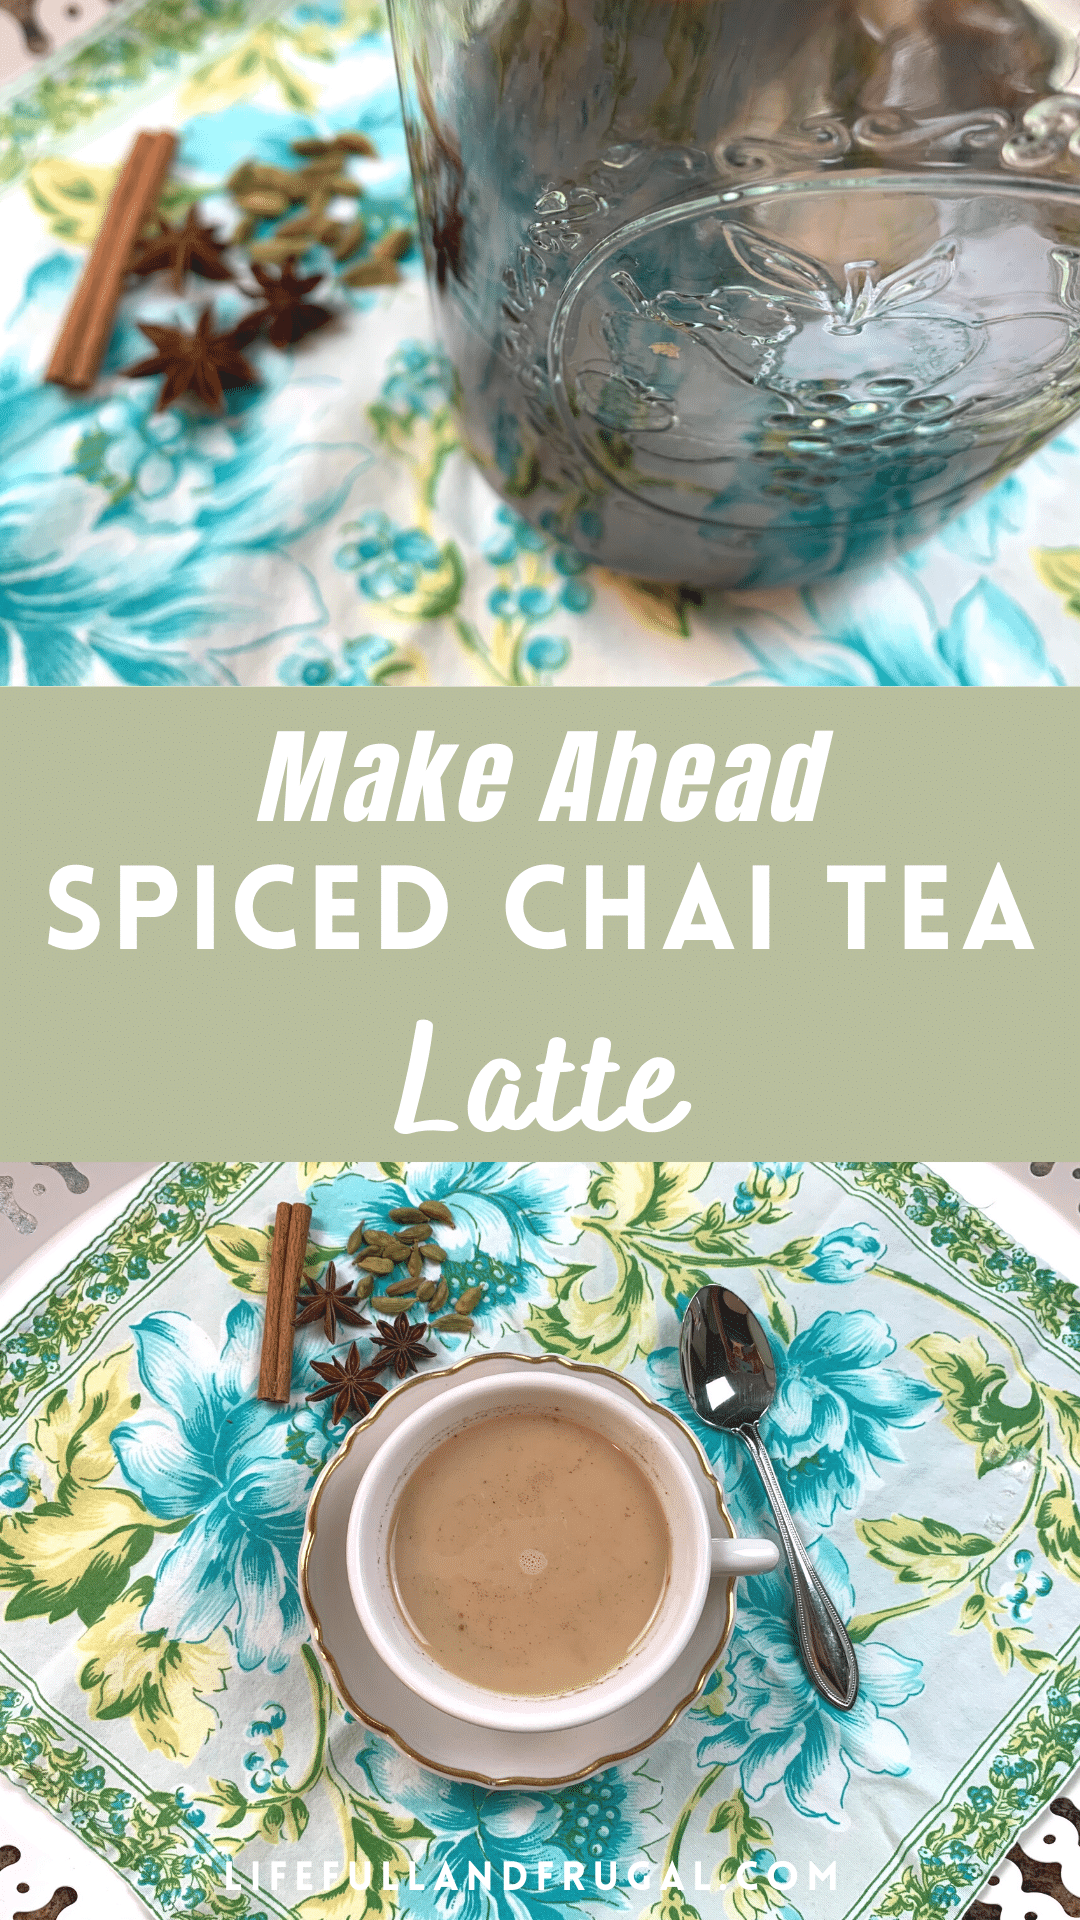 make ahead spiced chat tea latte Pinterest life full and frugal